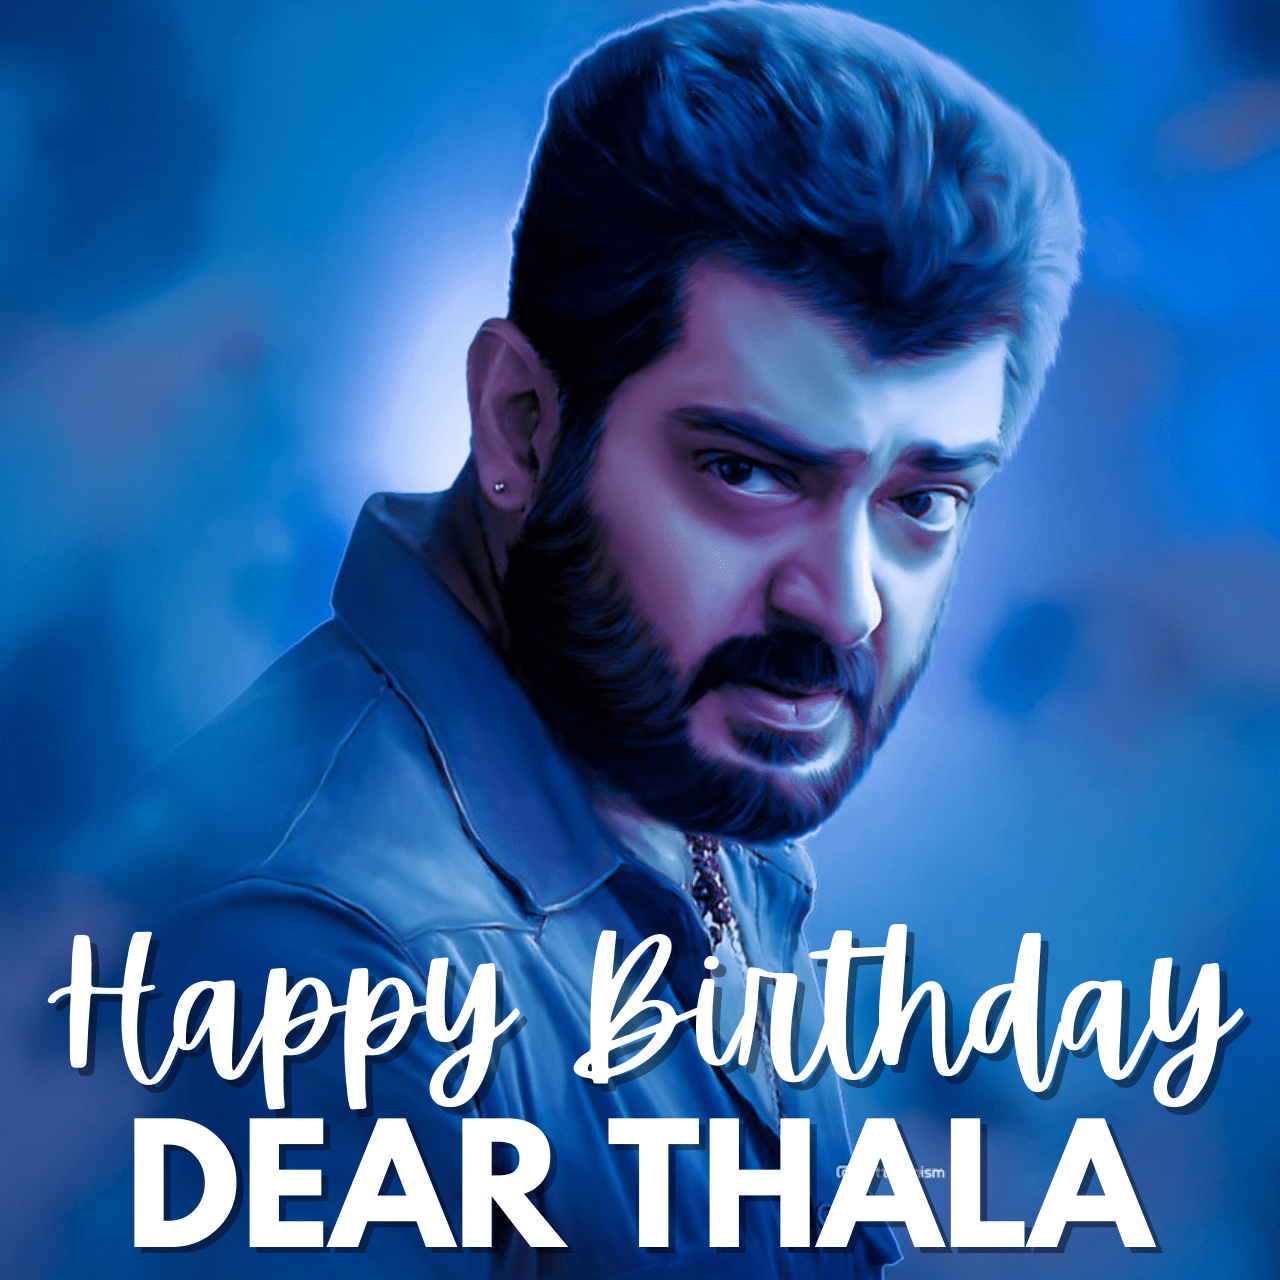 Happy Birthday Ajith Kumar Wishes, Quotes and Images (Photos) to Share with Thala Ajith